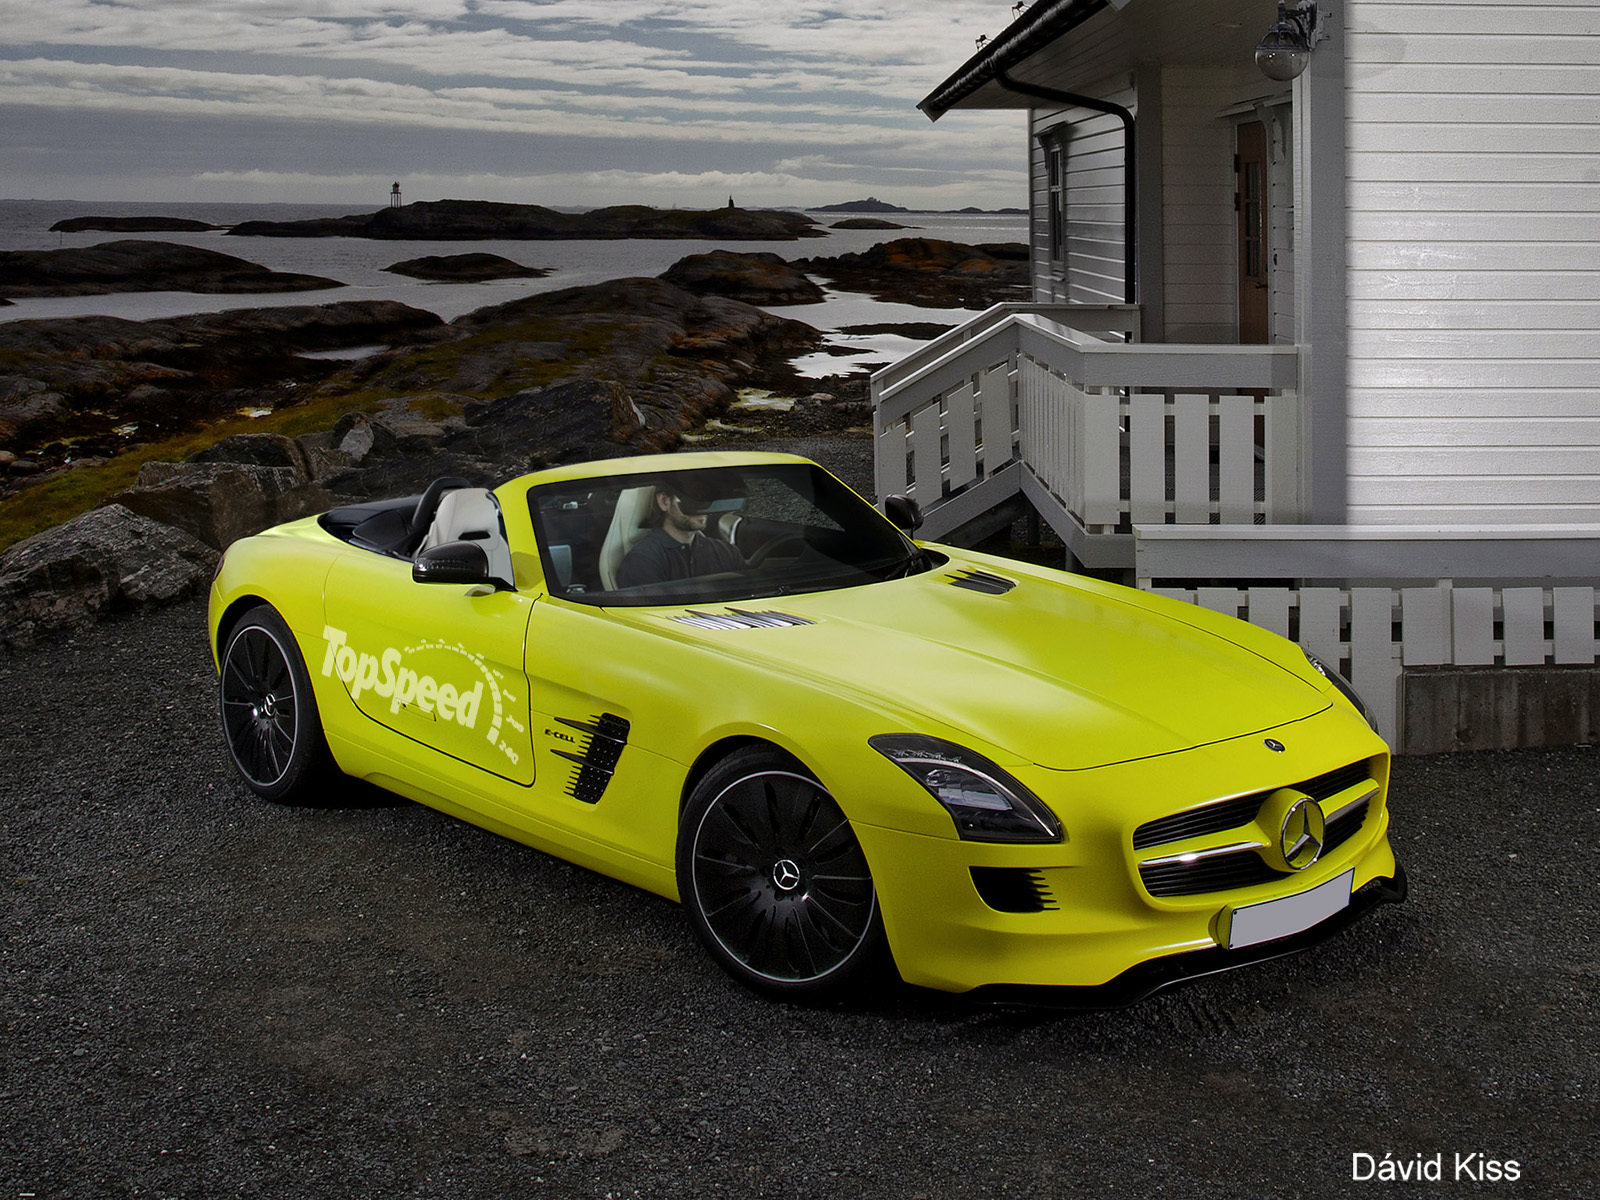 2015 mercedes benz sls amg e cell roadster picture for 2015 mercedes benz sls amg convertible